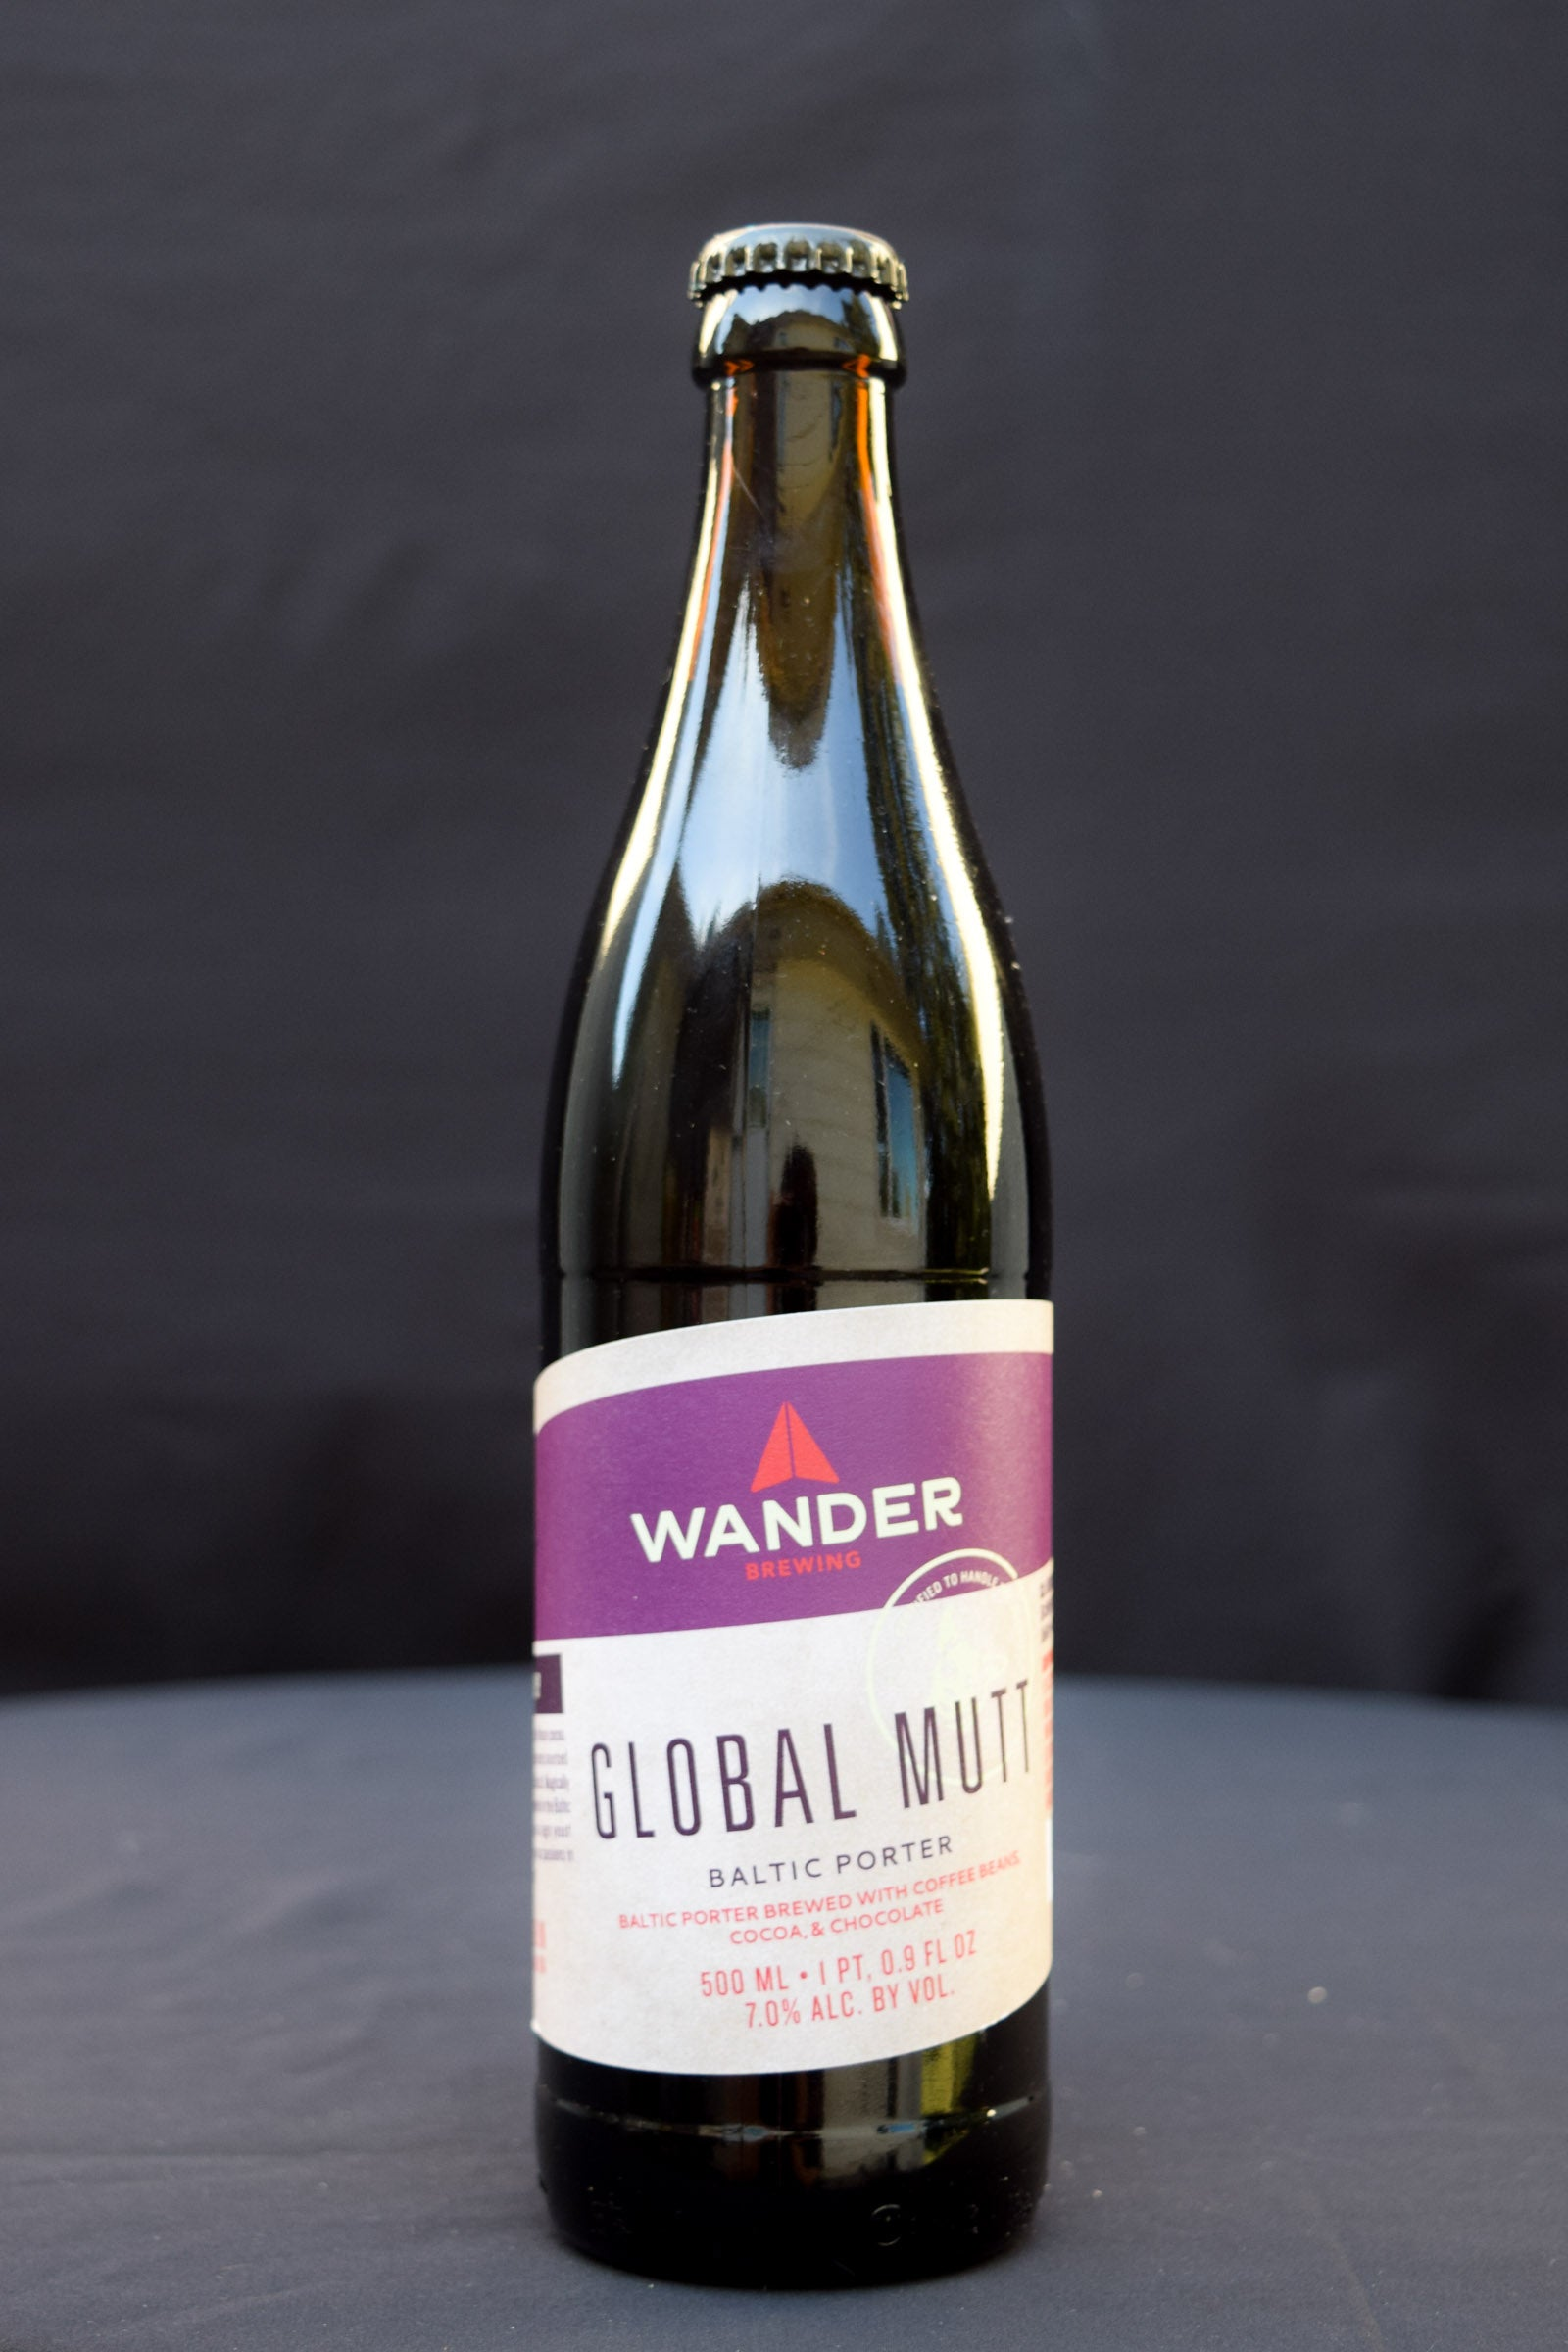 Wander Global Mutt Baltic Porter